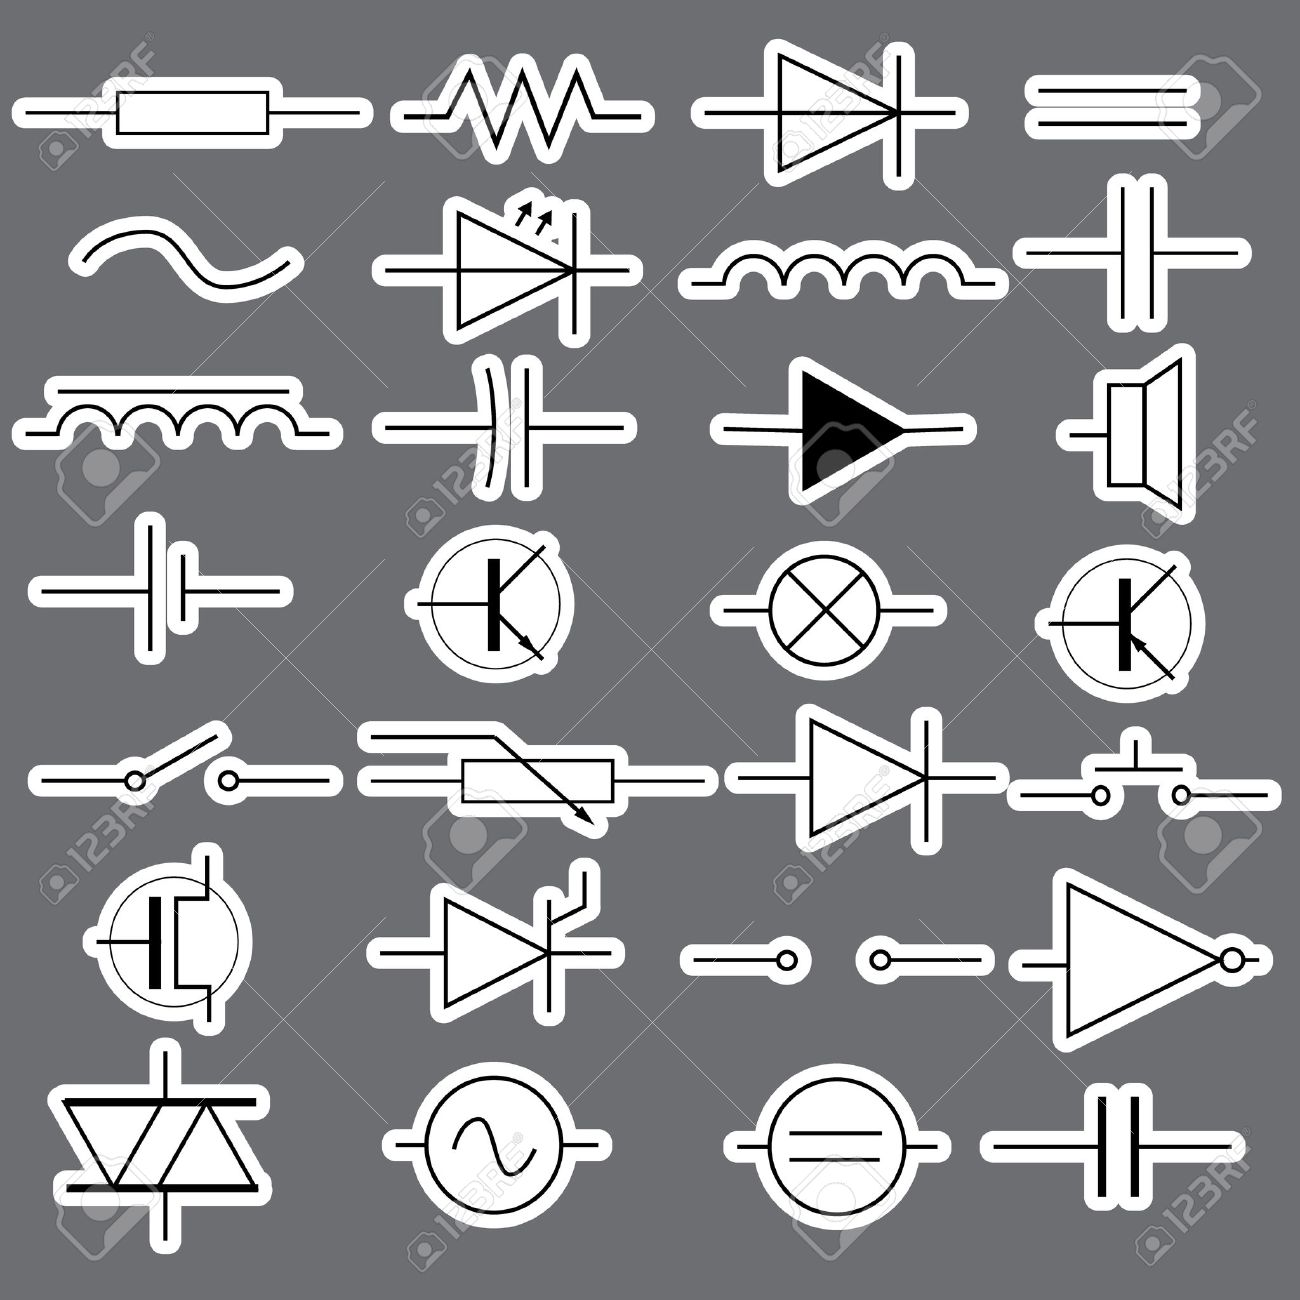 schematic symbols in electrical engineering stickers eps10 royalty vector schematic symbols in electrical engineering stickers eps10